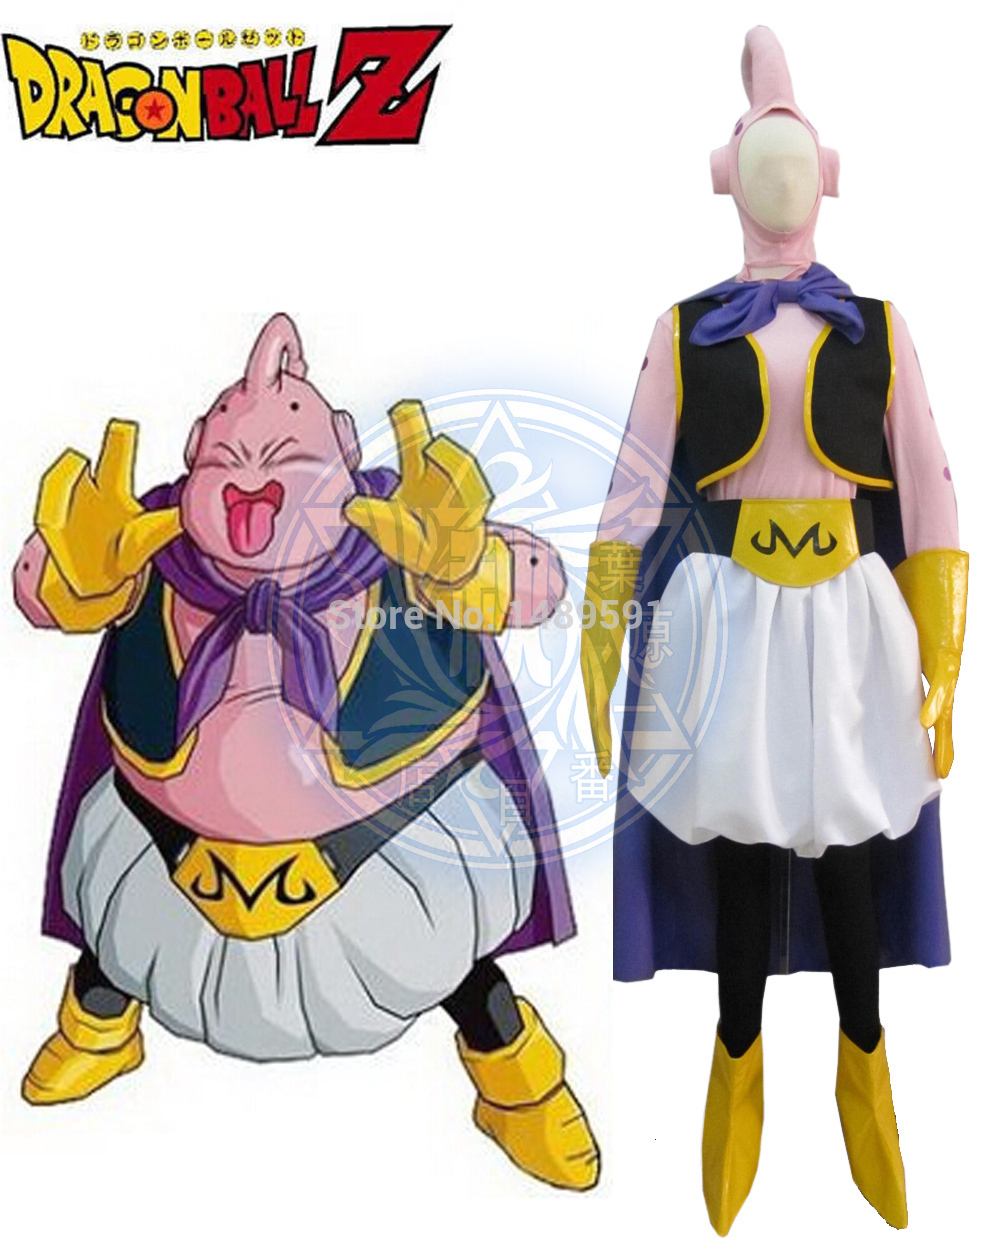 Hot Movie Game Anime Dragon Ball Z Majin Boo the Fat Boo Party Uniform Cosplay Costume Any Size Free Shipping